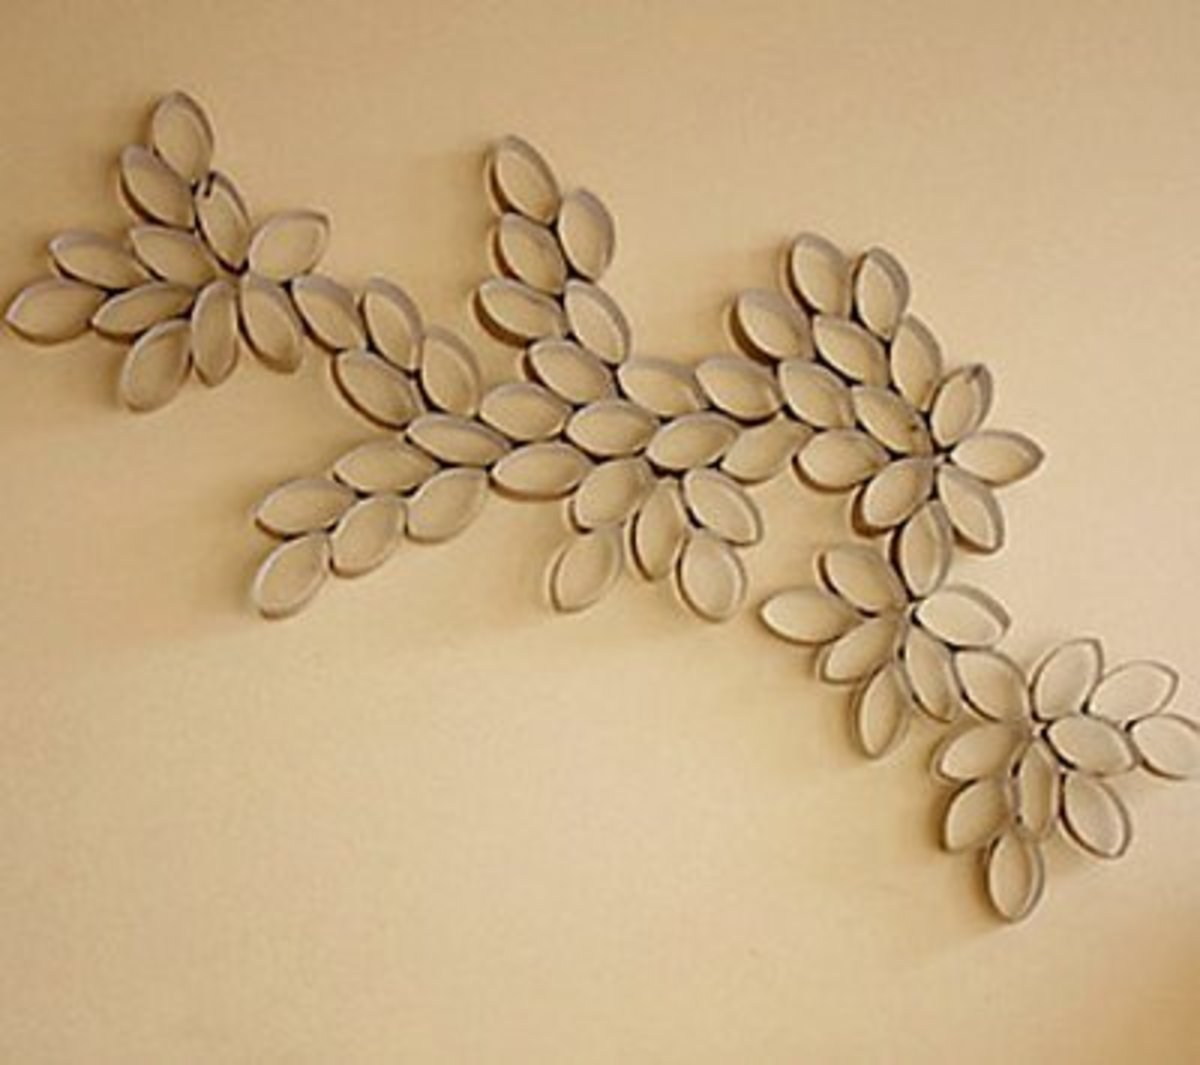 56 Amazing Paper Roll Crafts Ideas | FeltMagnet